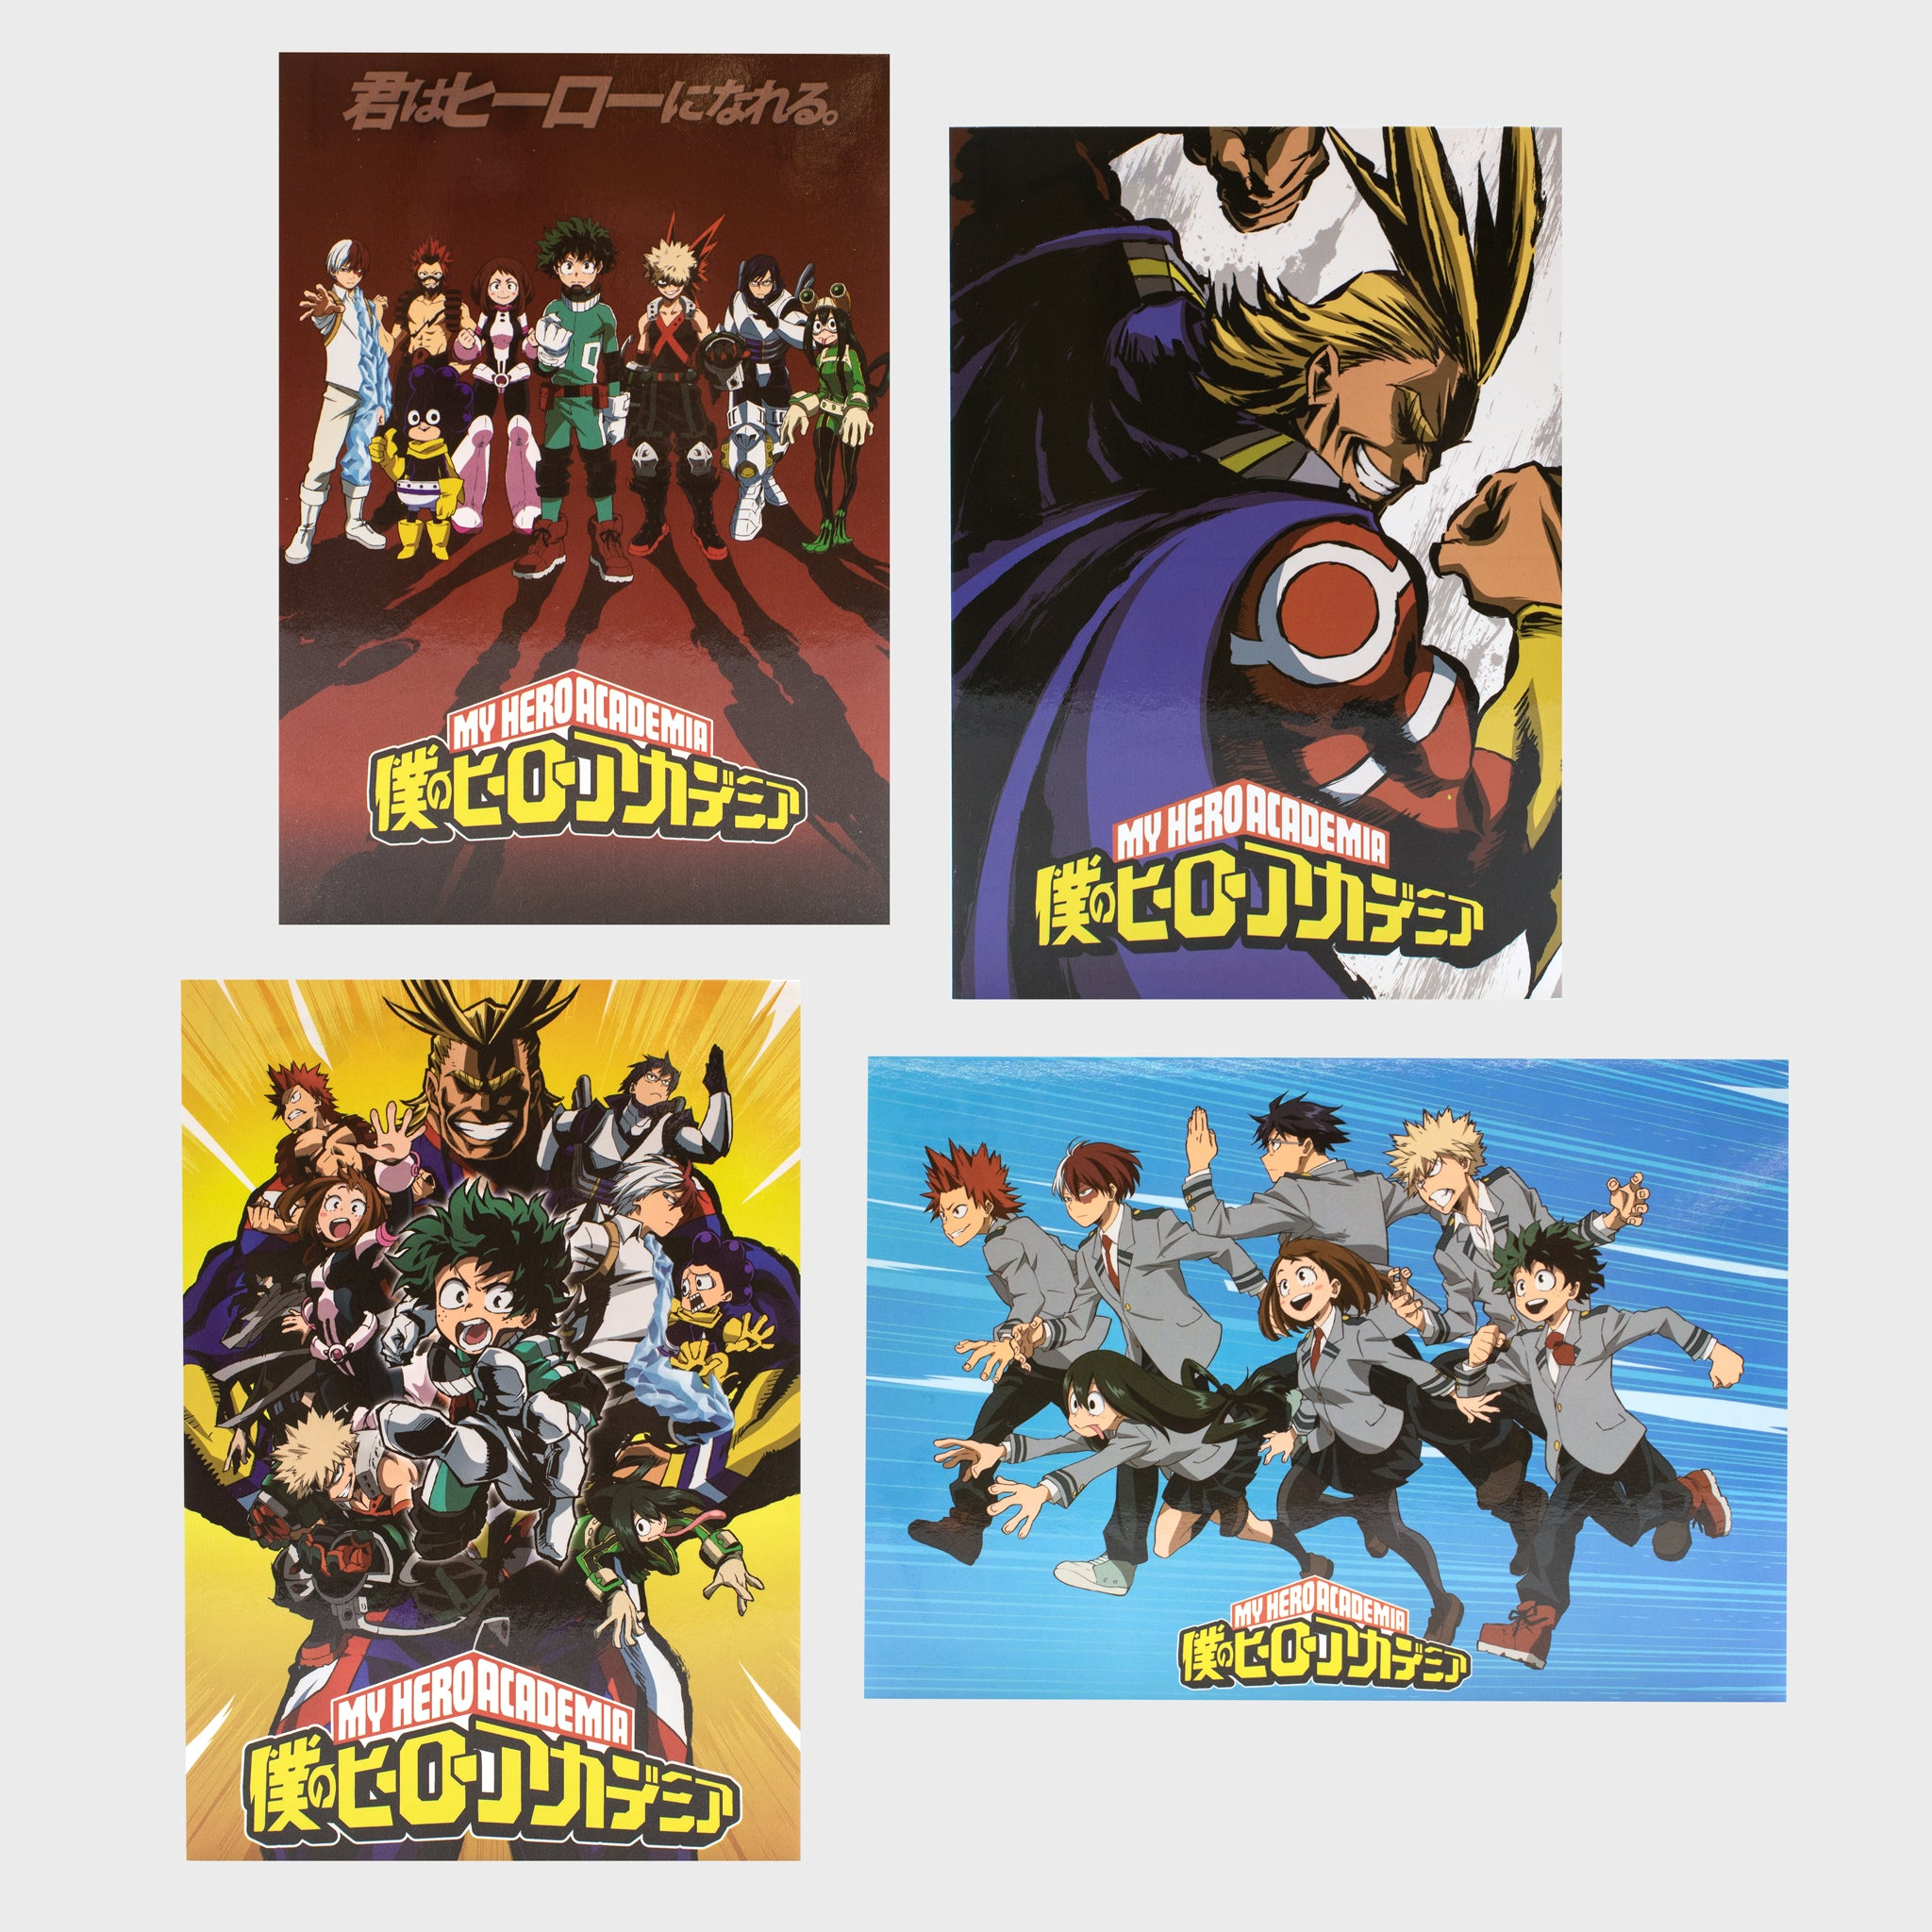 my hero academia mha deku izuku midoriya anime collector's box collectibles exclusives back to school winter all might accessories culturefly postcards art